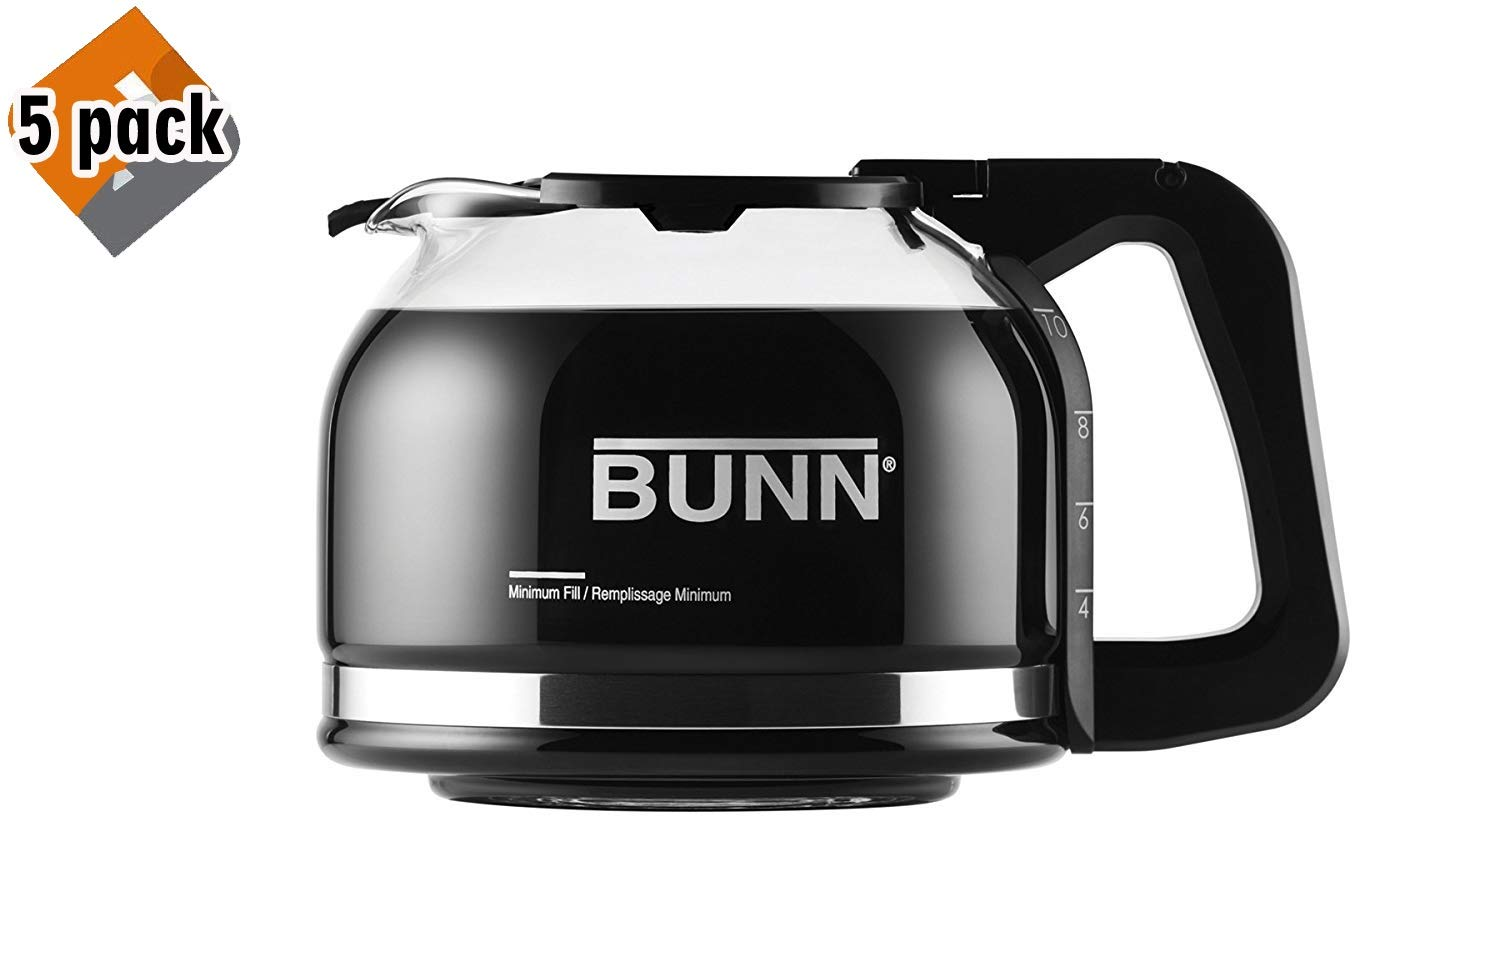 BUNN Pour-O-Matic 10-Cup Drip Free Carafe, Black - 5 Pack